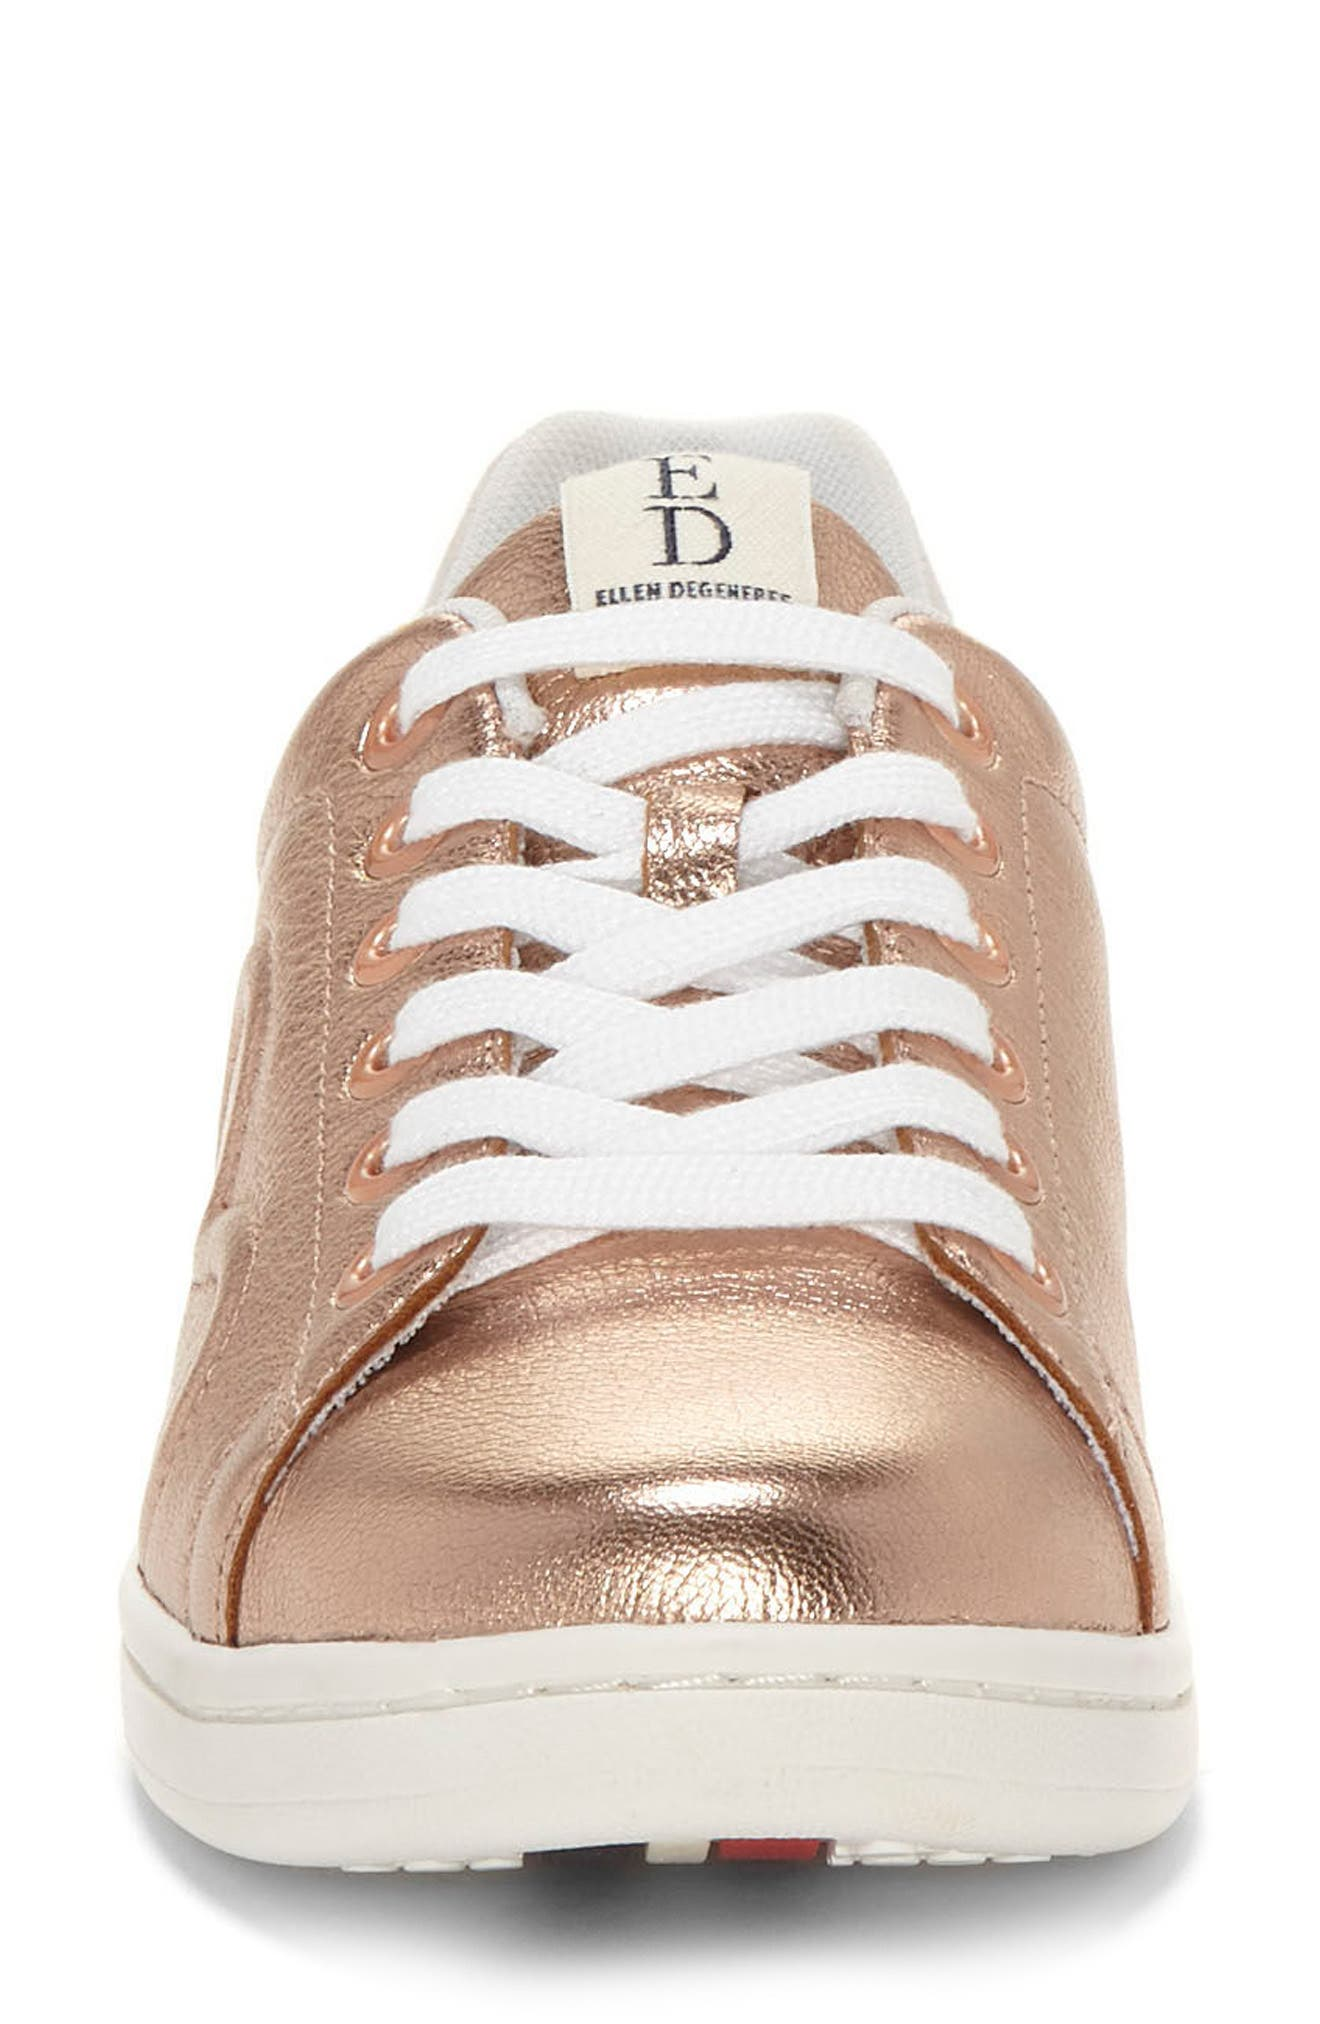 Chapunto Sneaker,                             Alternate thumbnail 5, color,                             Rose Gold Leather